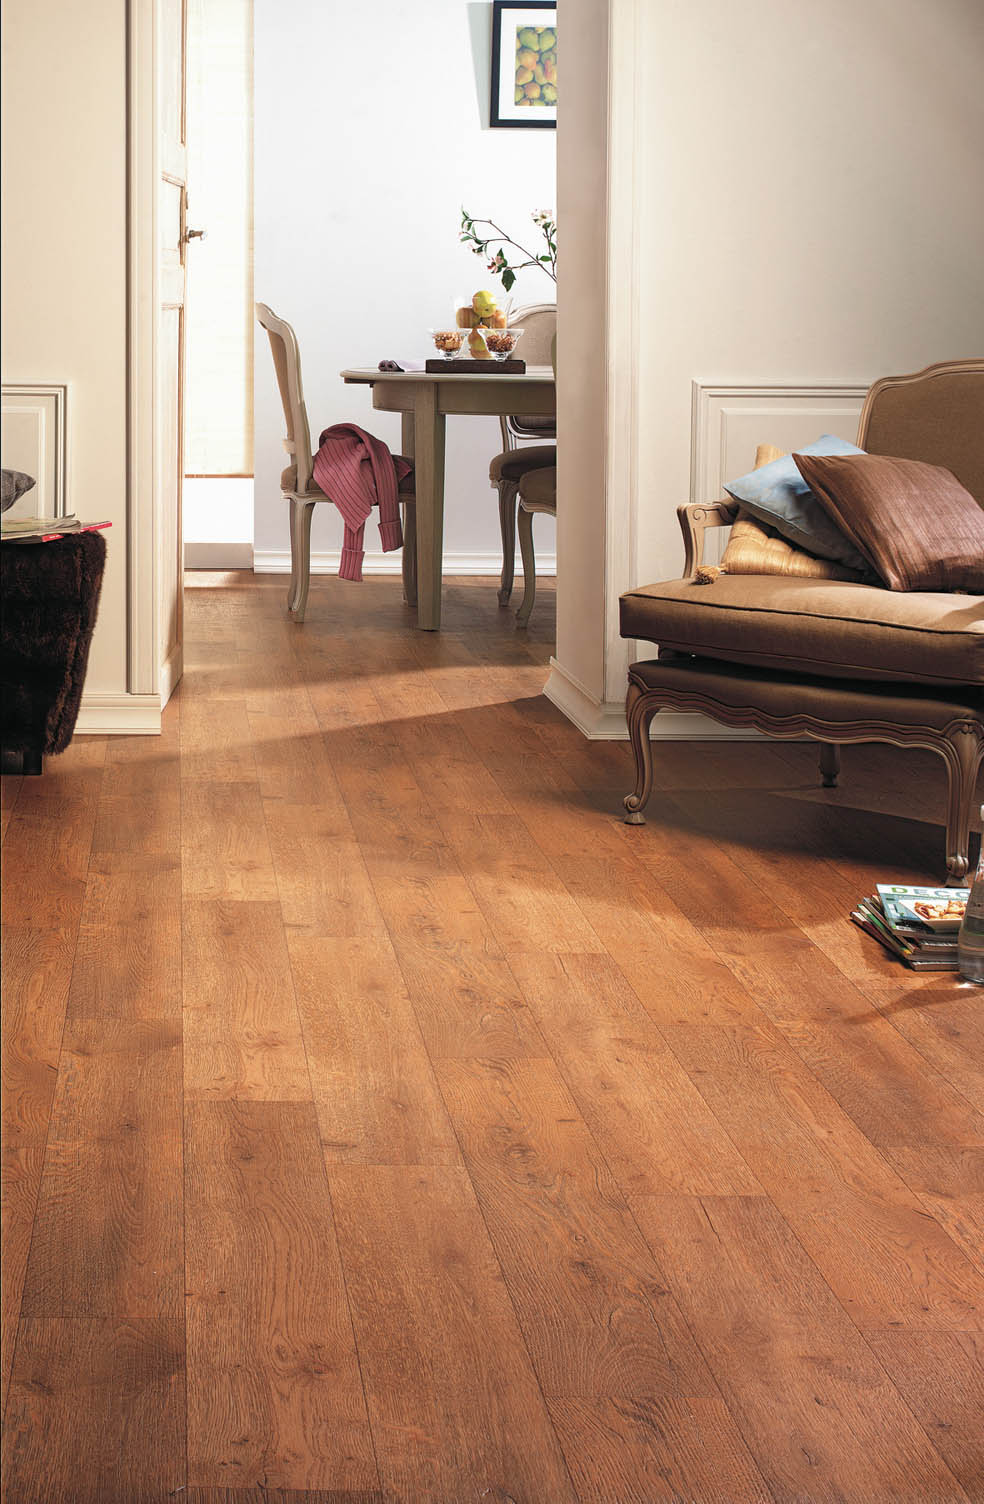 Flexitec Wonderwood Vinyl Flooring